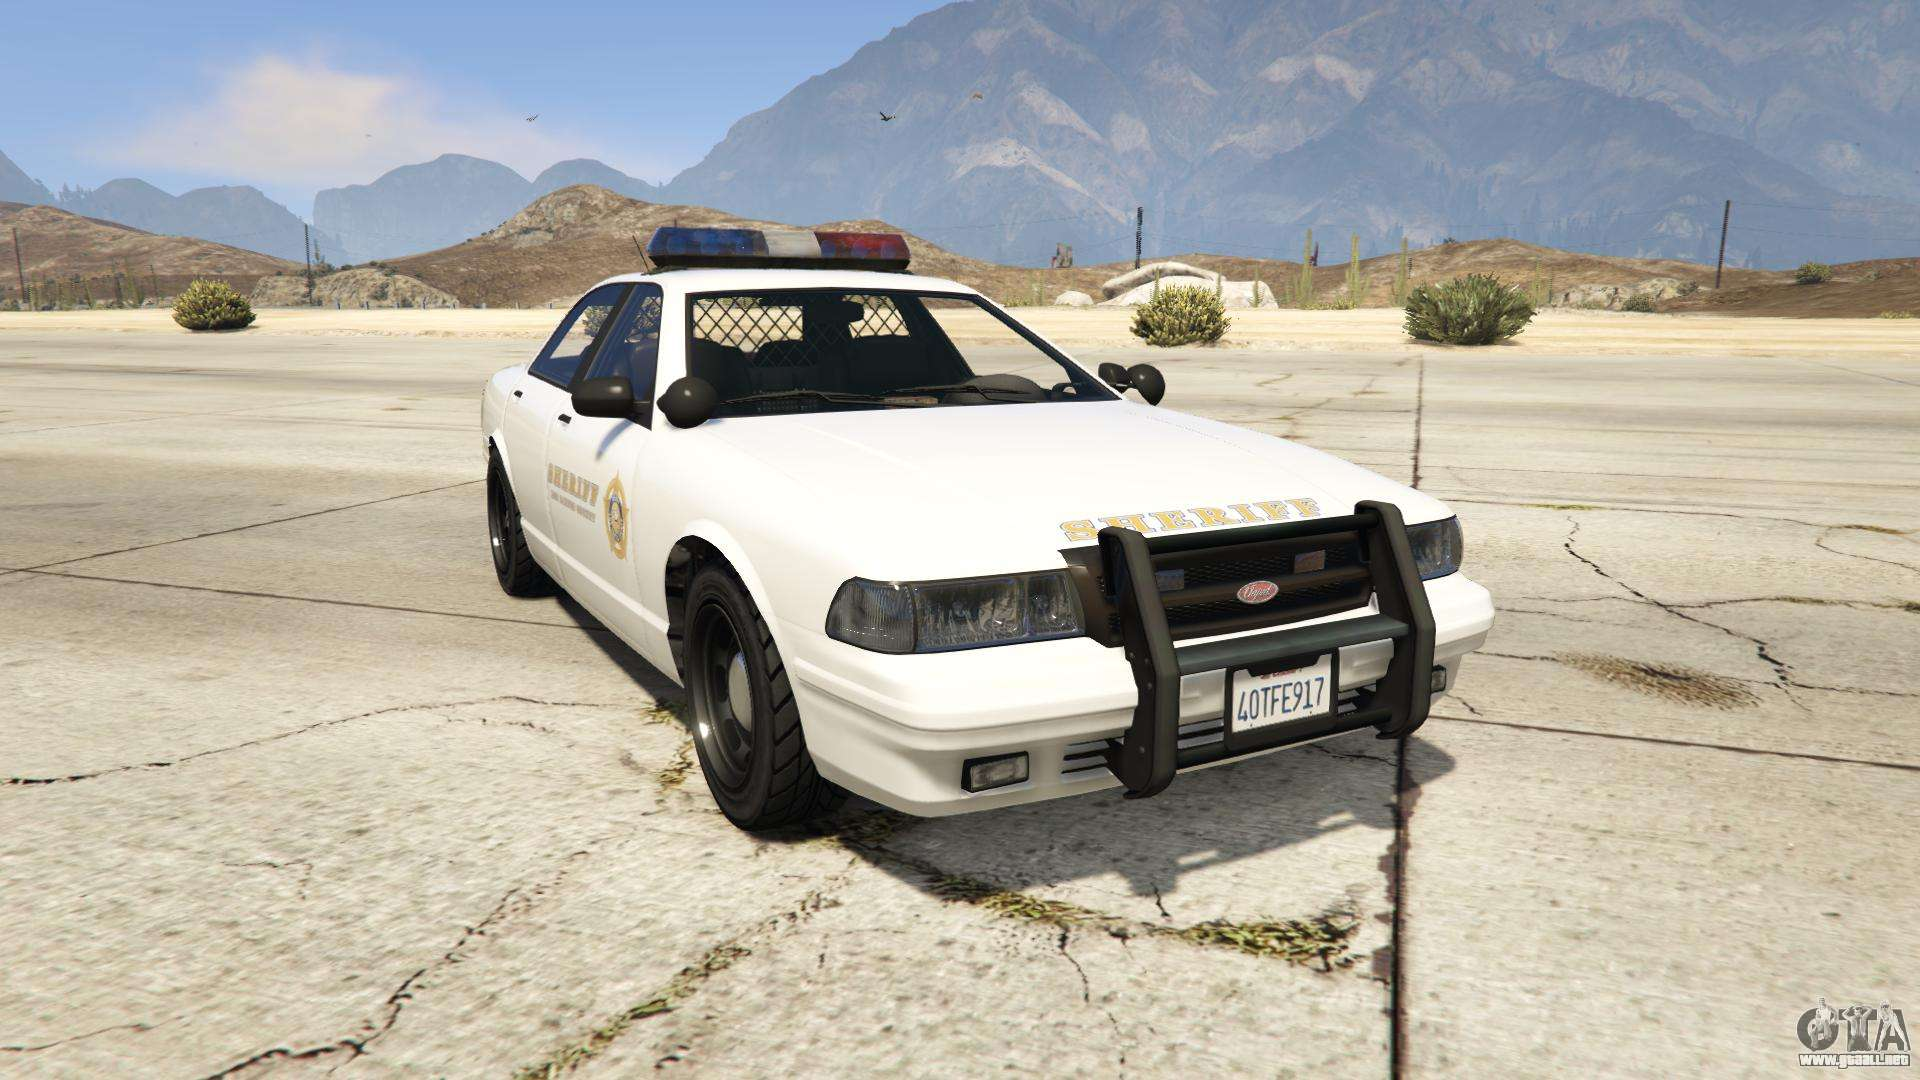 GTA 5 Vapid Sheriff Cruiser - vista frontal